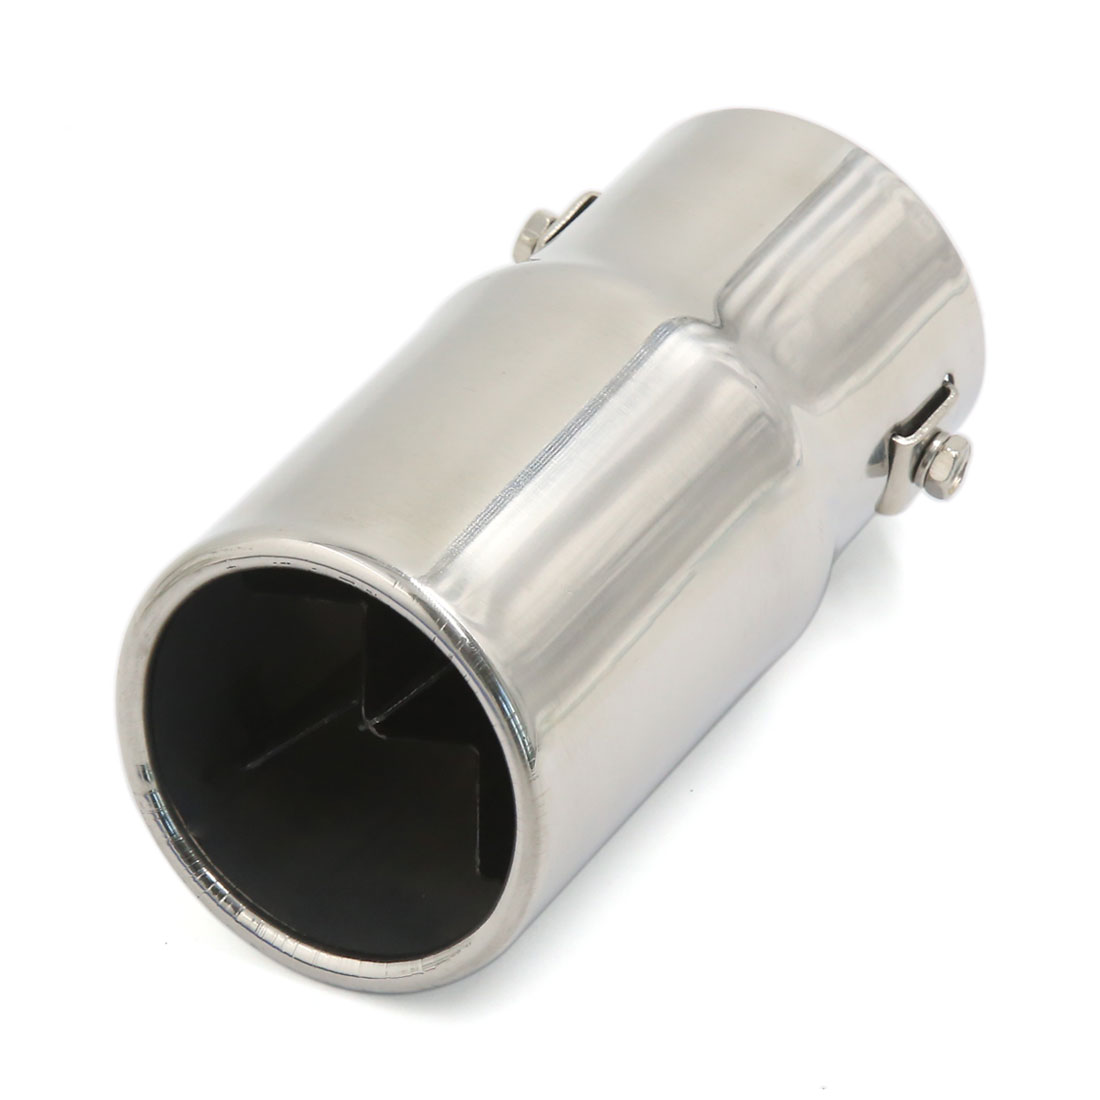 Universla Stainless Steel Oval Outlet Exhaust Muffler Tip 66mm Inlet for Car